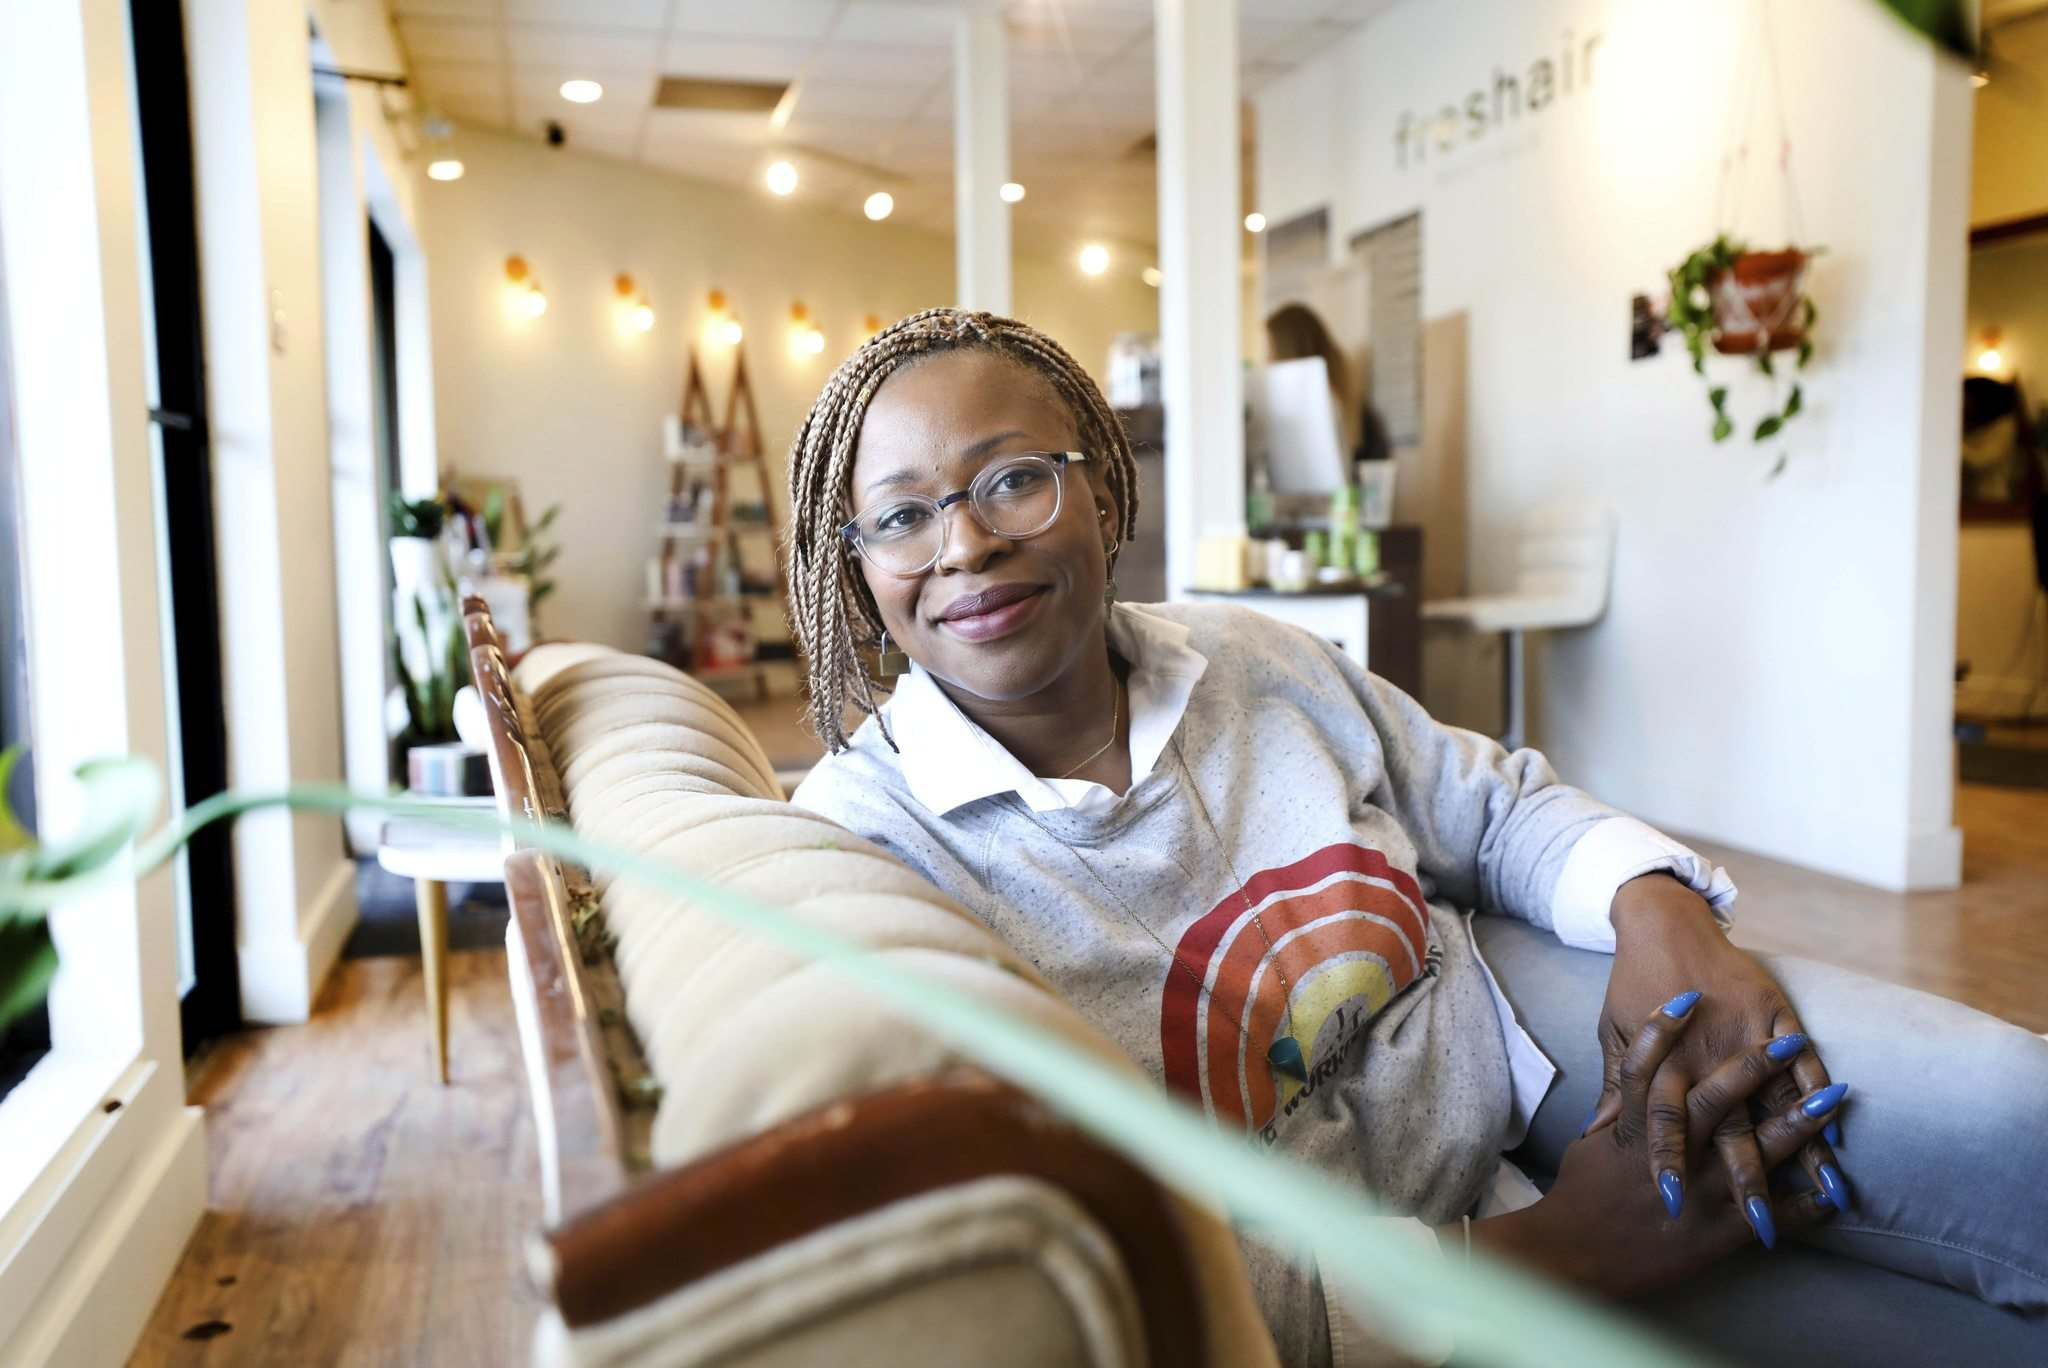 Praise Okwumabuain's Freshair became the first independent salon in Winnipeg to enrol in the recycling program. (Ruth Bonneville / Winnipeg Free Press)